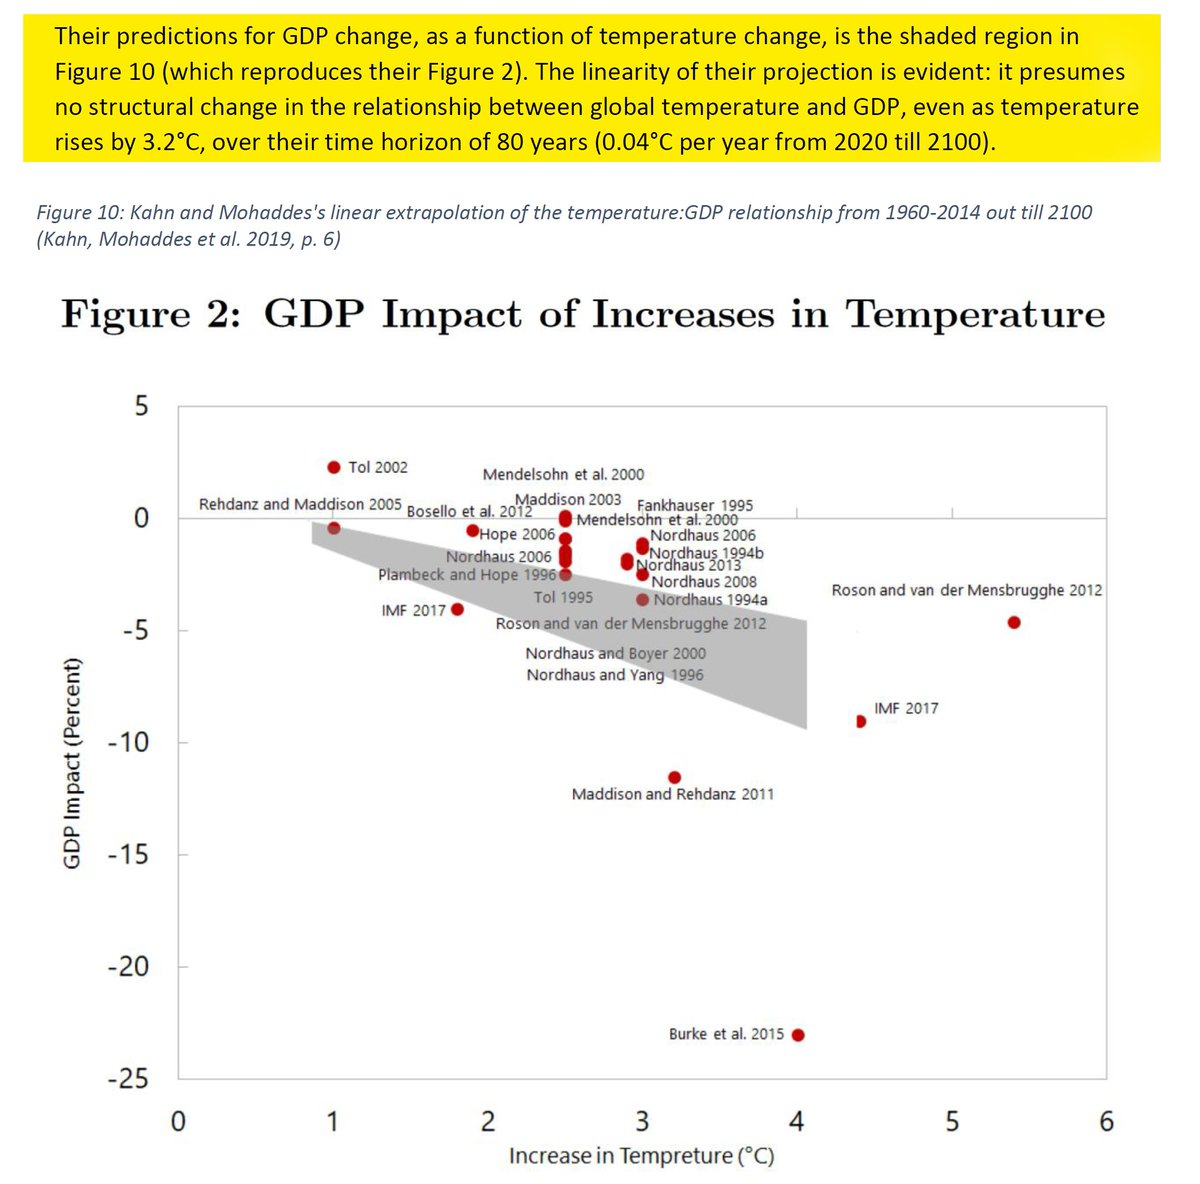 """36/44 """"The linearity of their projection is evident: it presumes no structural change in the relationship between global temperature and GDP, even as temperature rises by 3.2°C, over their time horizon of 80 years."""""""